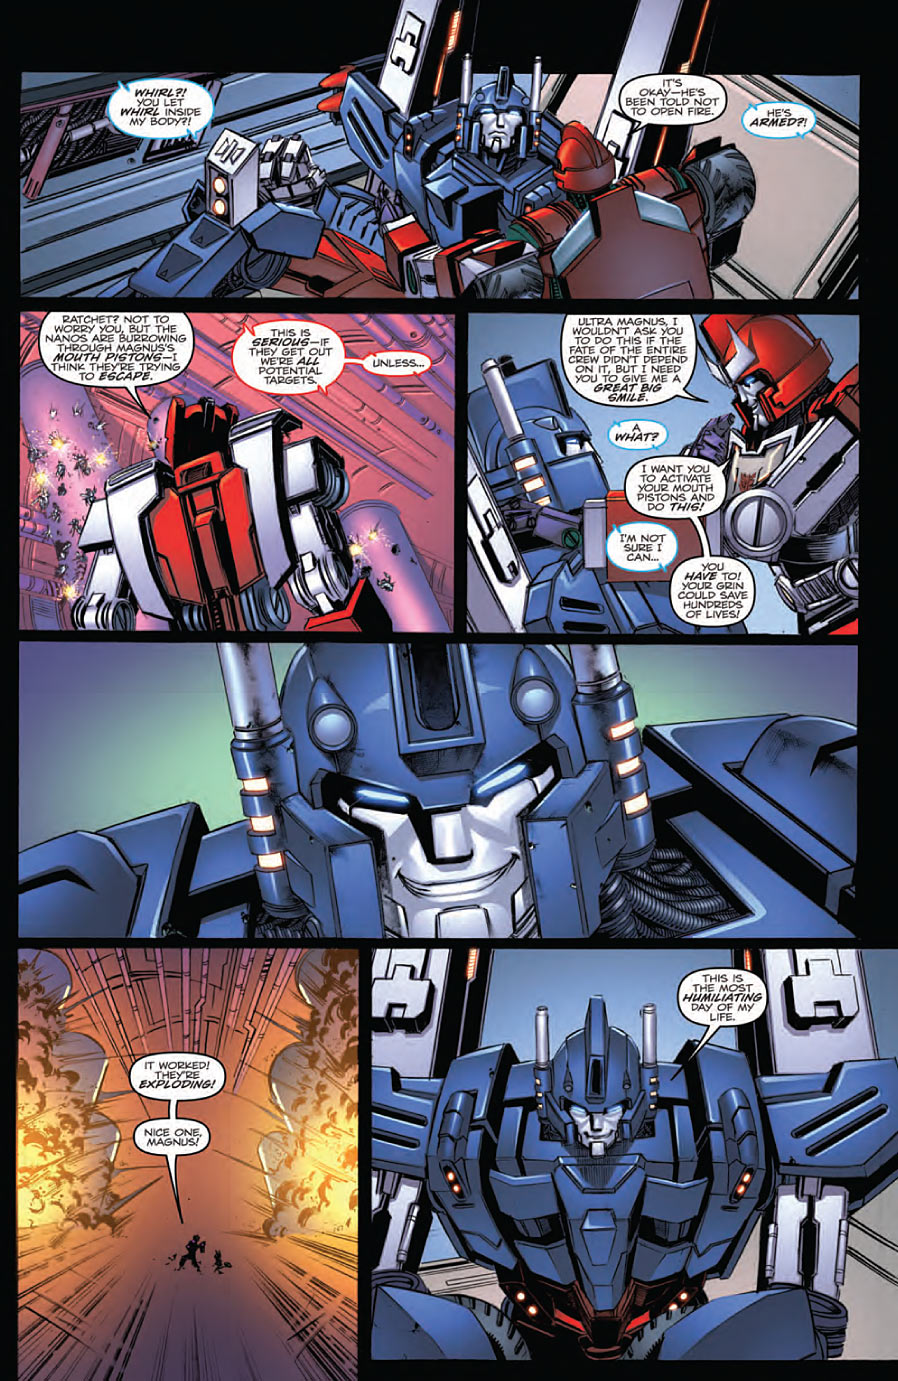 transformers-comics-more-than-meets-the-eye-annual-2012-page-4 Transformers More Than Meets the Eye Annual 2012